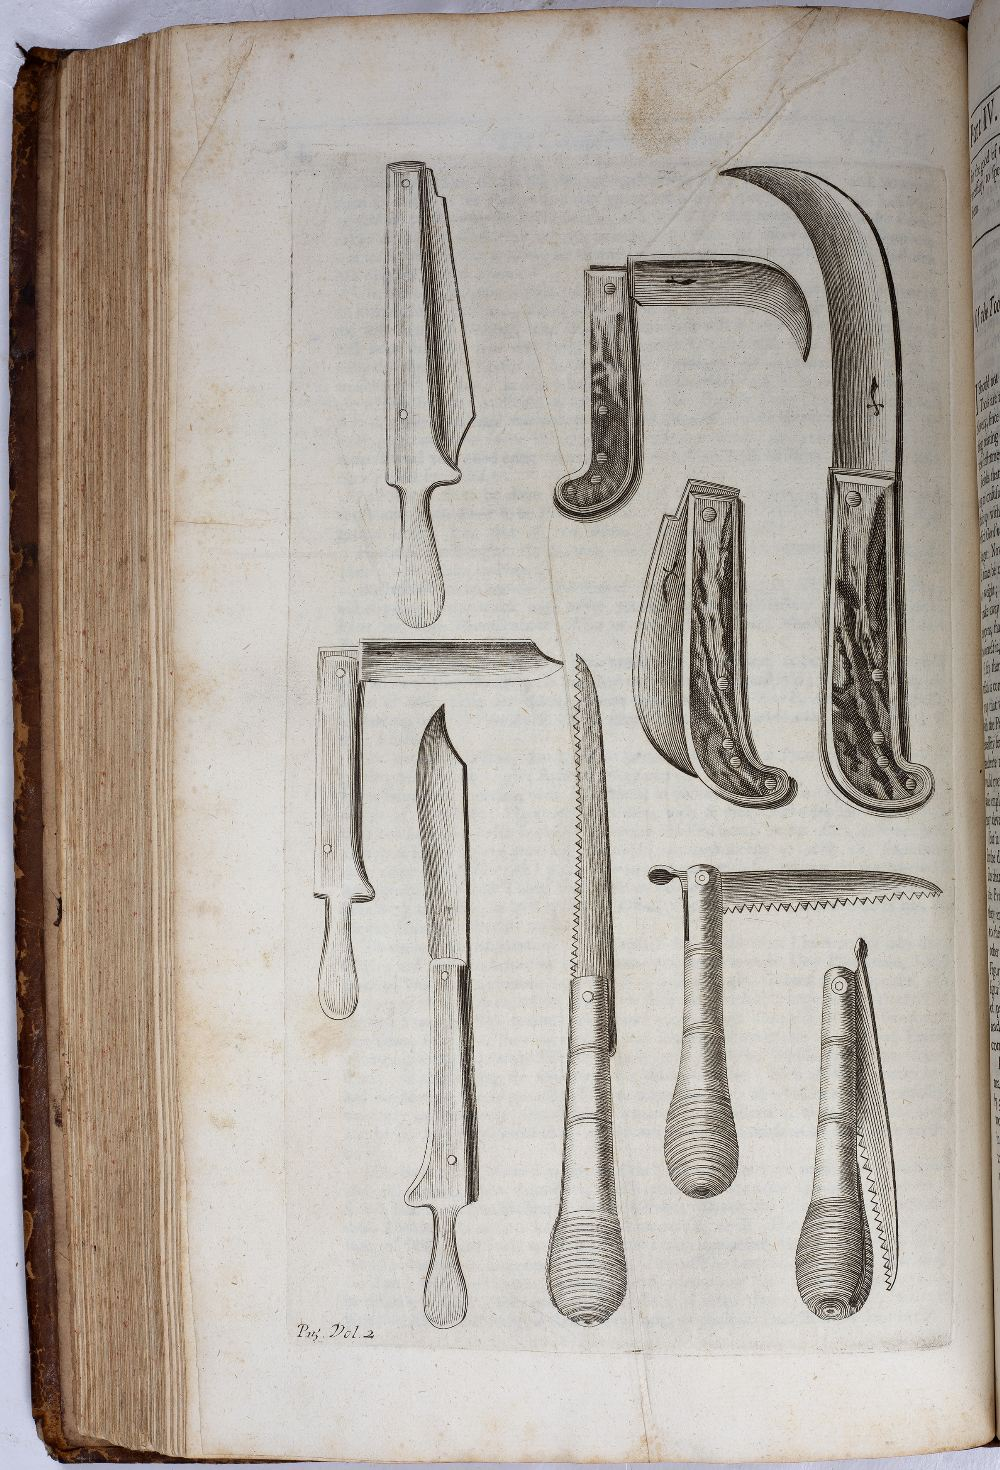 LA QUINTINYE, Jean de, 'The Compleat Gard'ner; or Directions for Cultivating and Right Ordering of - Image 7 of 10